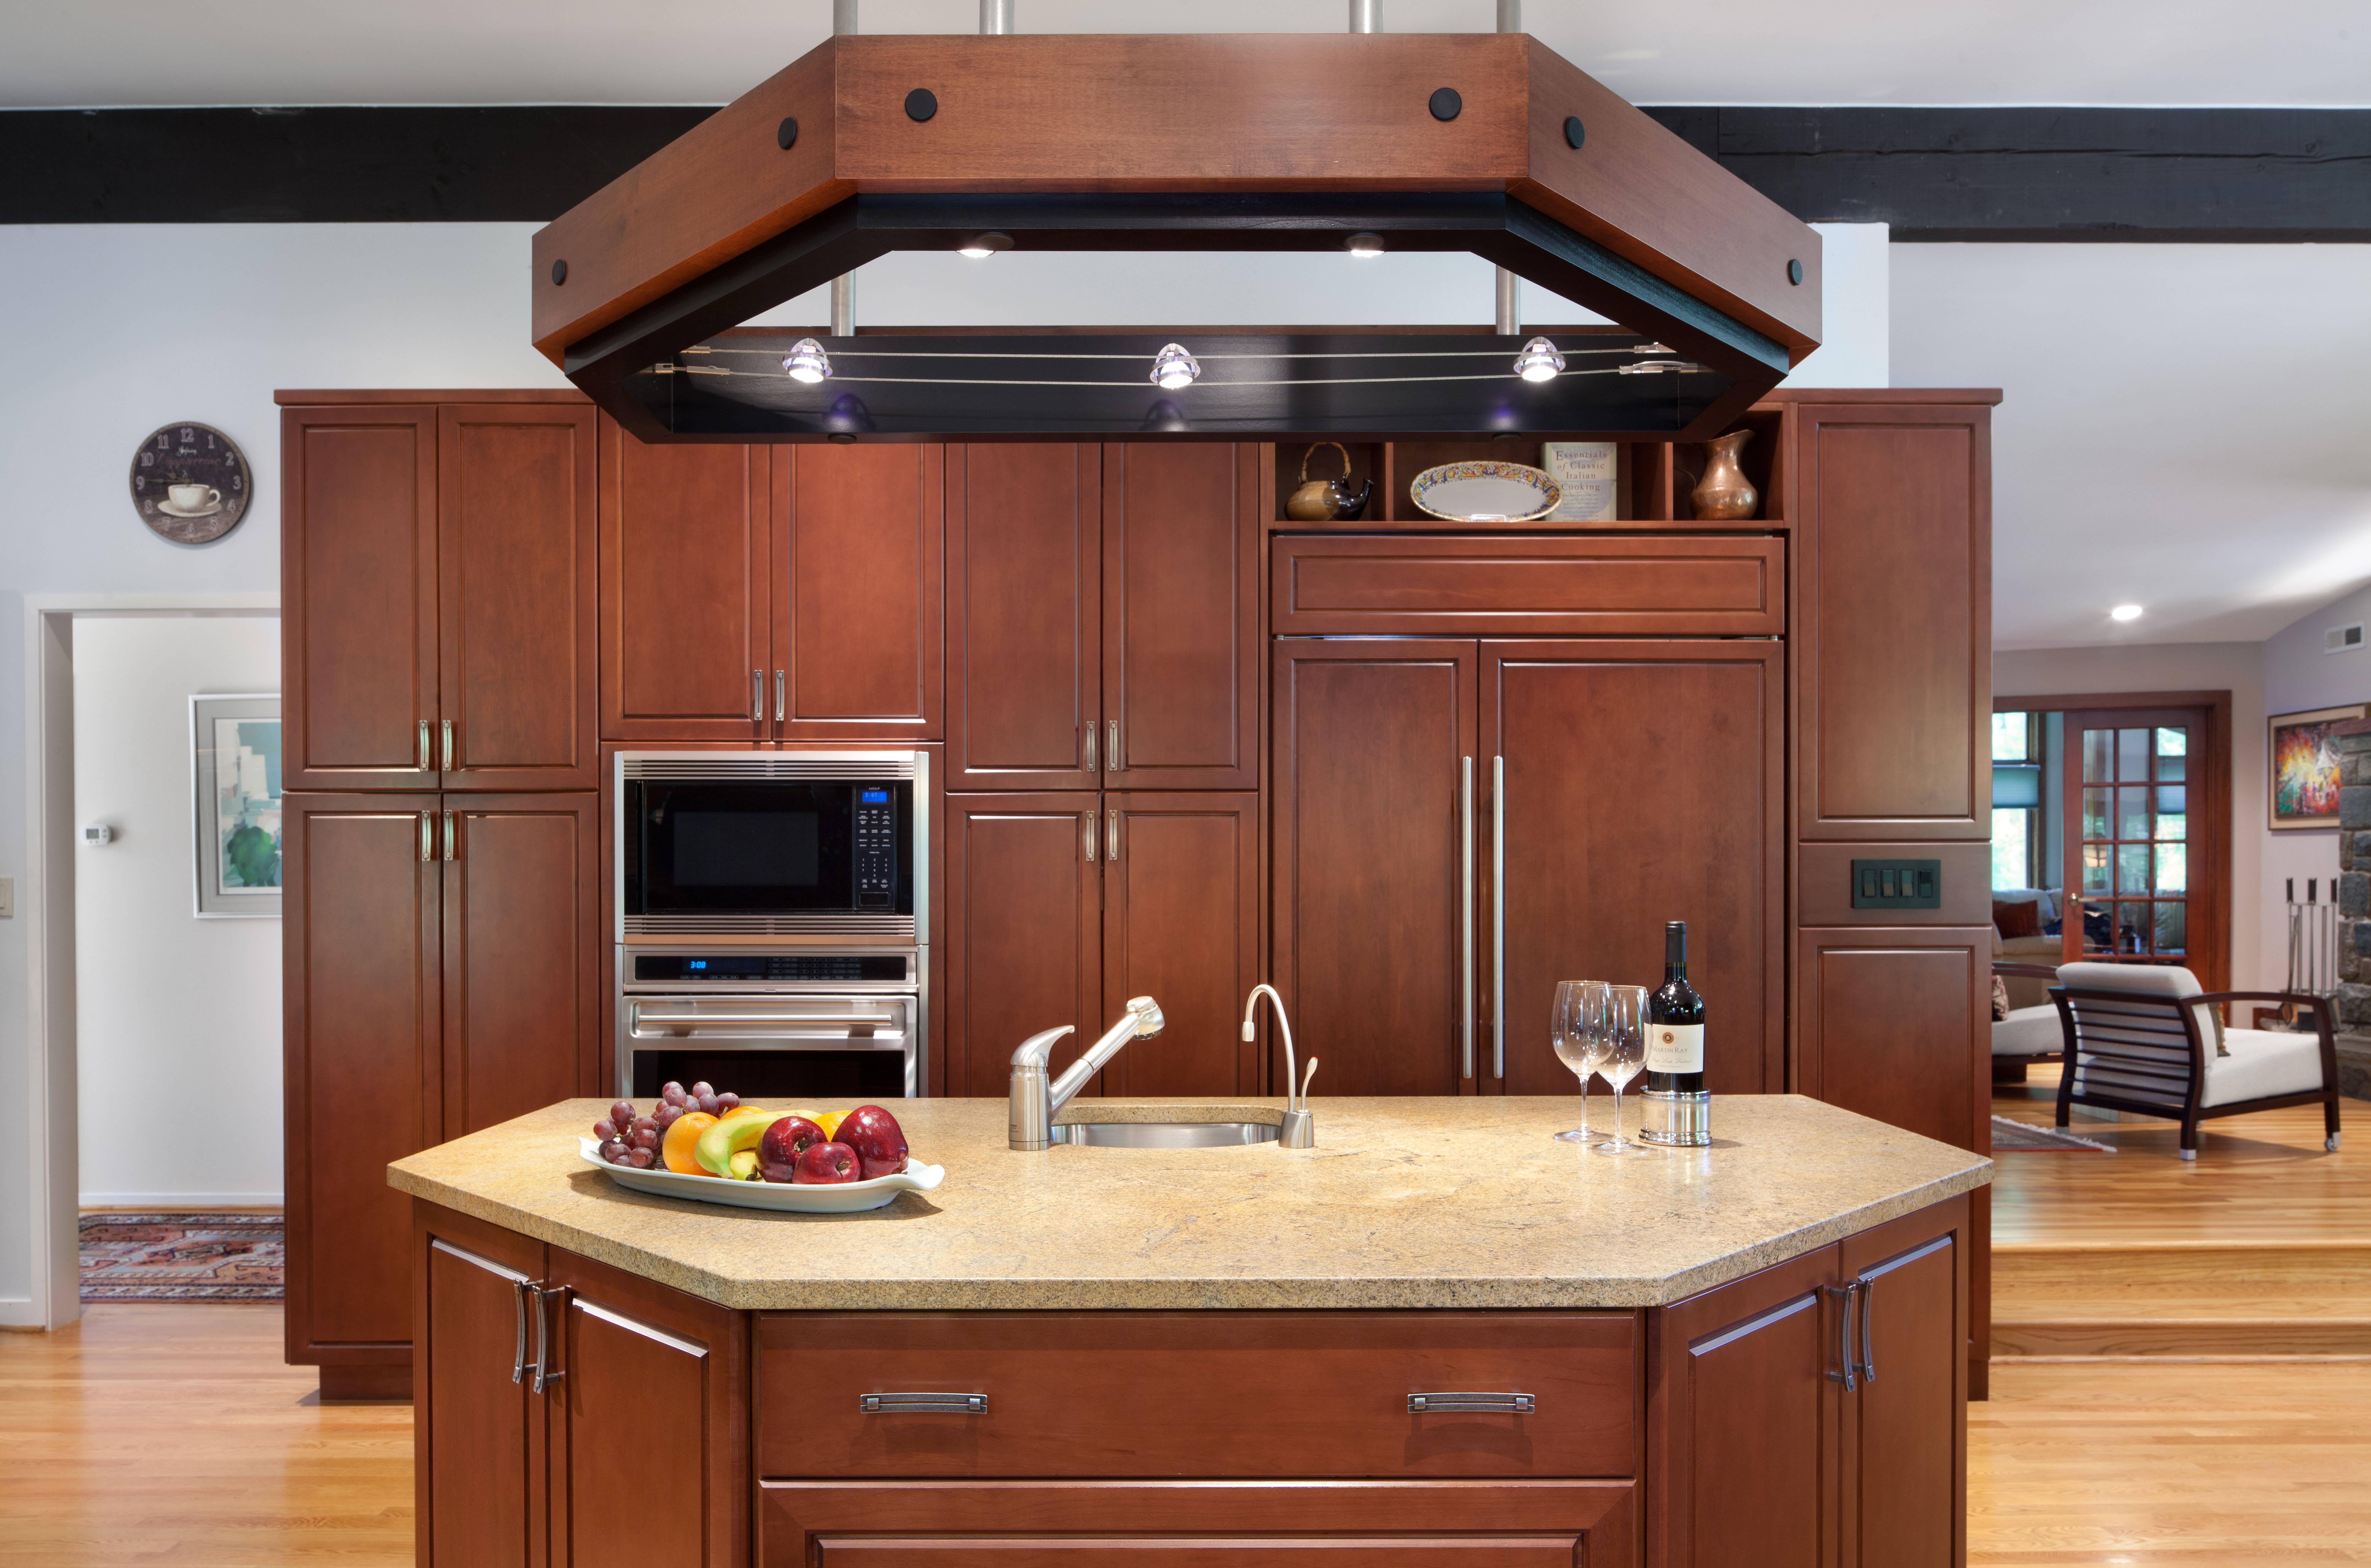 Island and Cabinetry